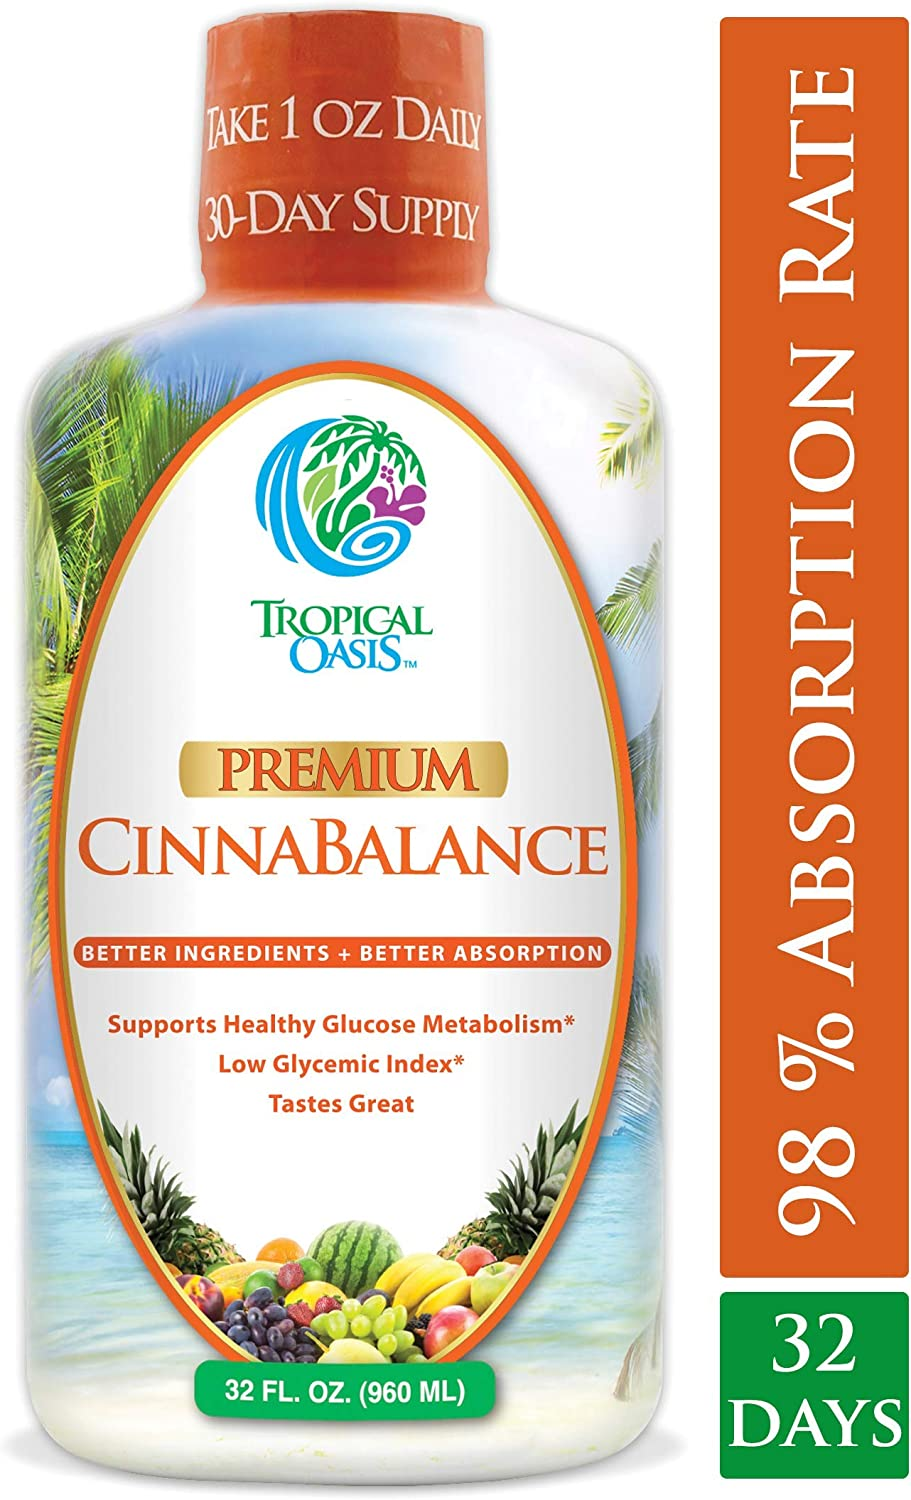 Cinnabalance Liquid Cinnamon Supplement w Cinnamon Bark, Aloe Vera, Ginger Root, Green Tea Antioxidants – Promotes healthy blood sugar support glucose levels – 32 oz, 32 servings